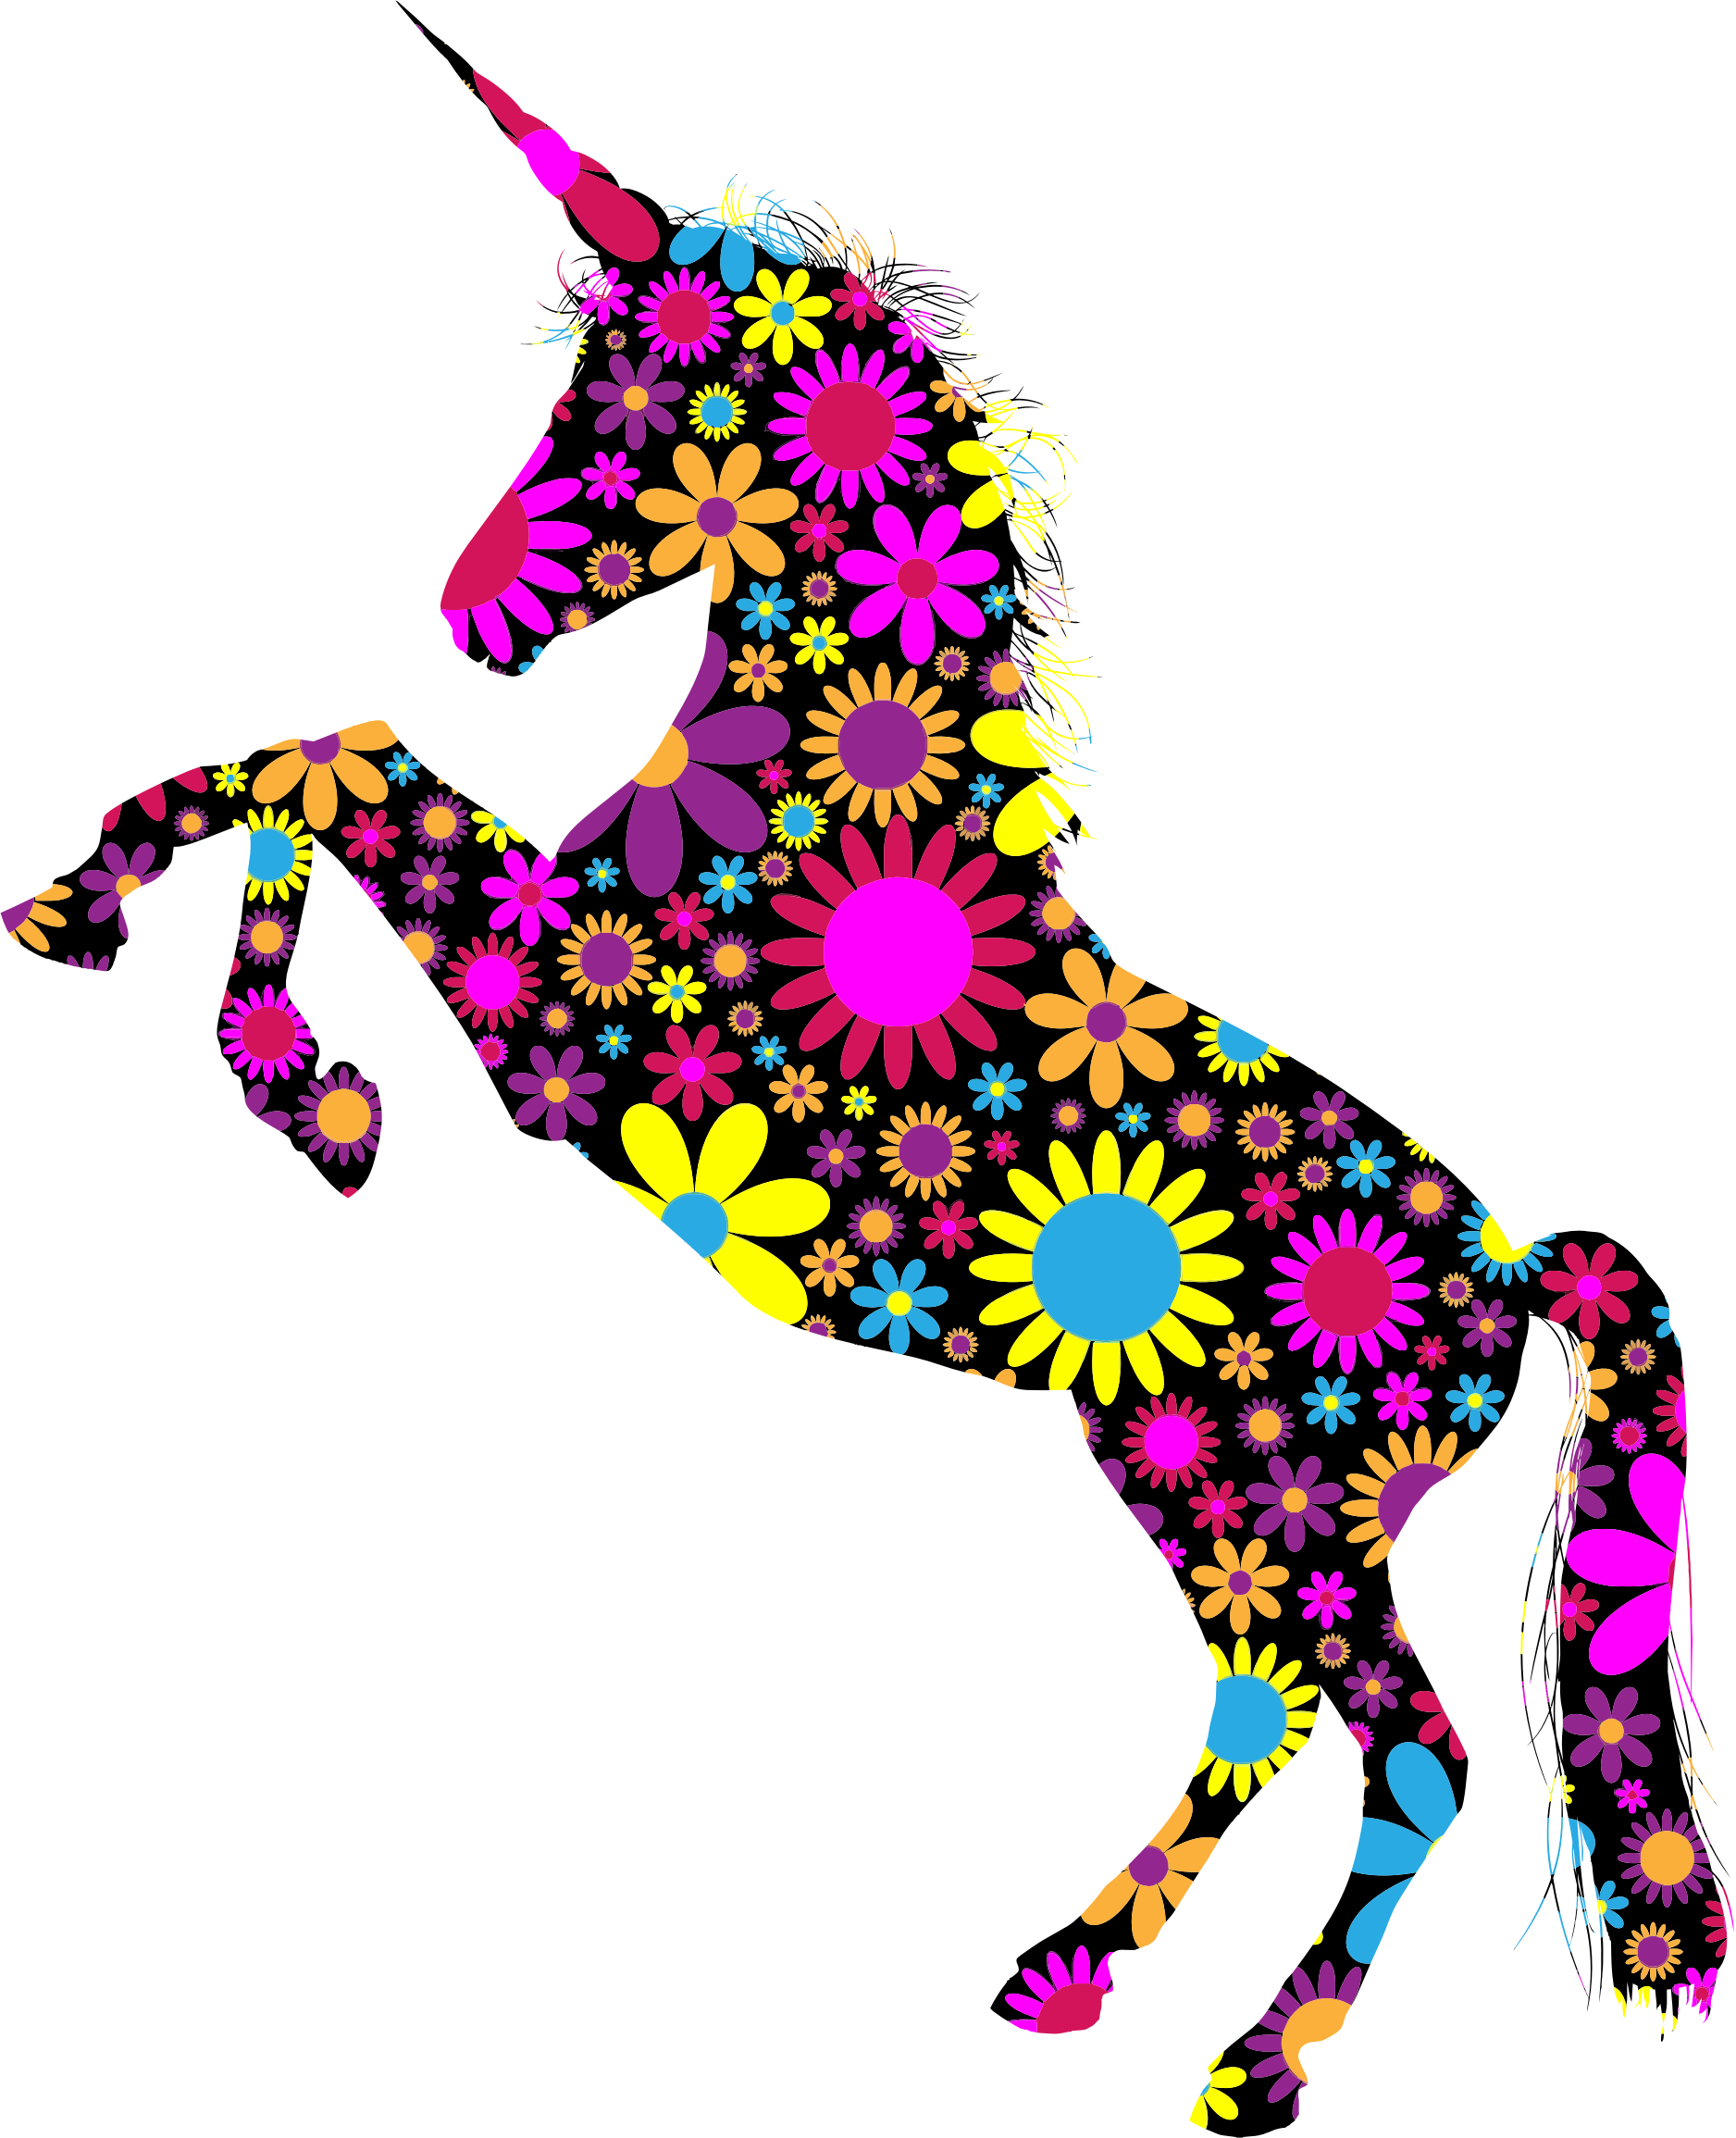 Unicorn png. Download free images icons banner freeuse download